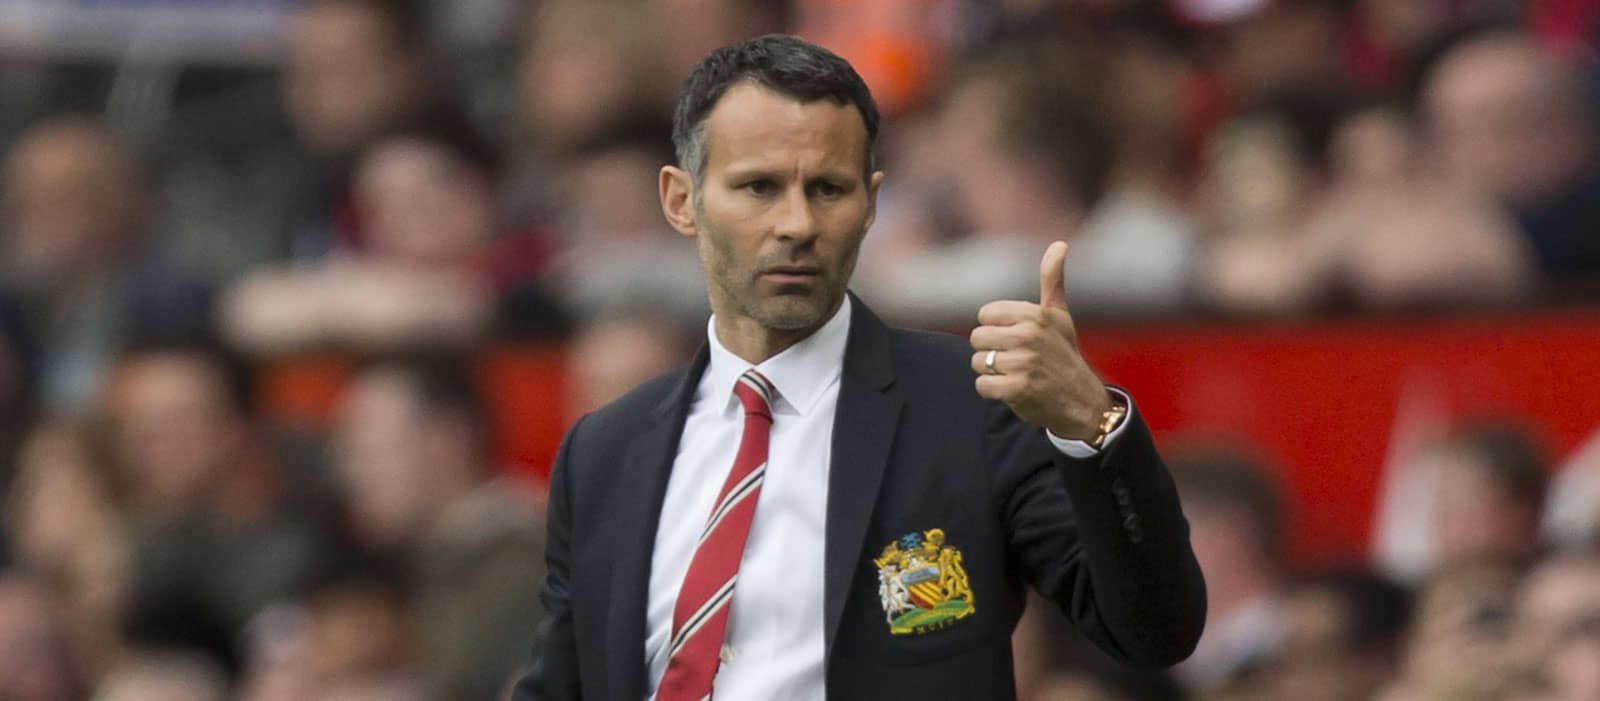 Ryan Giggs: Manchester City are not bigger than Manchester United